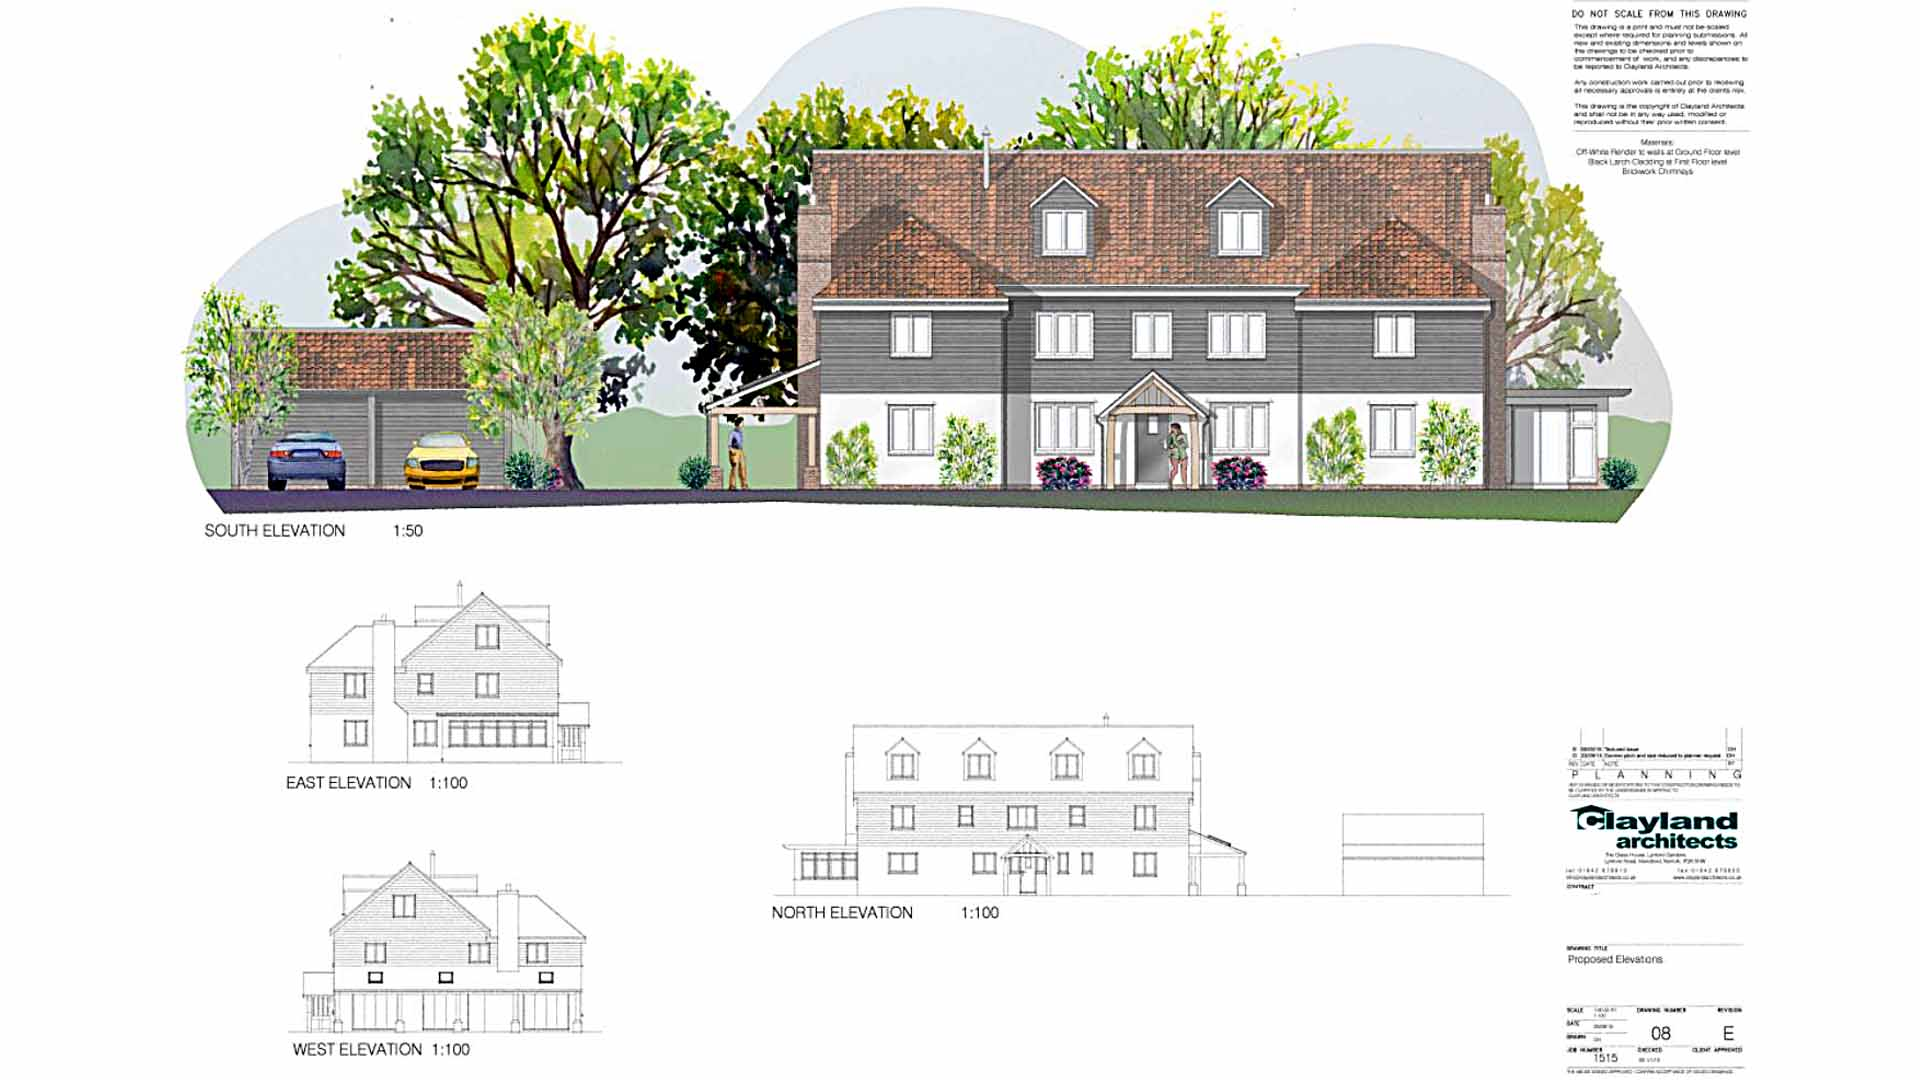 Greengate Farm design by Clayland Architects